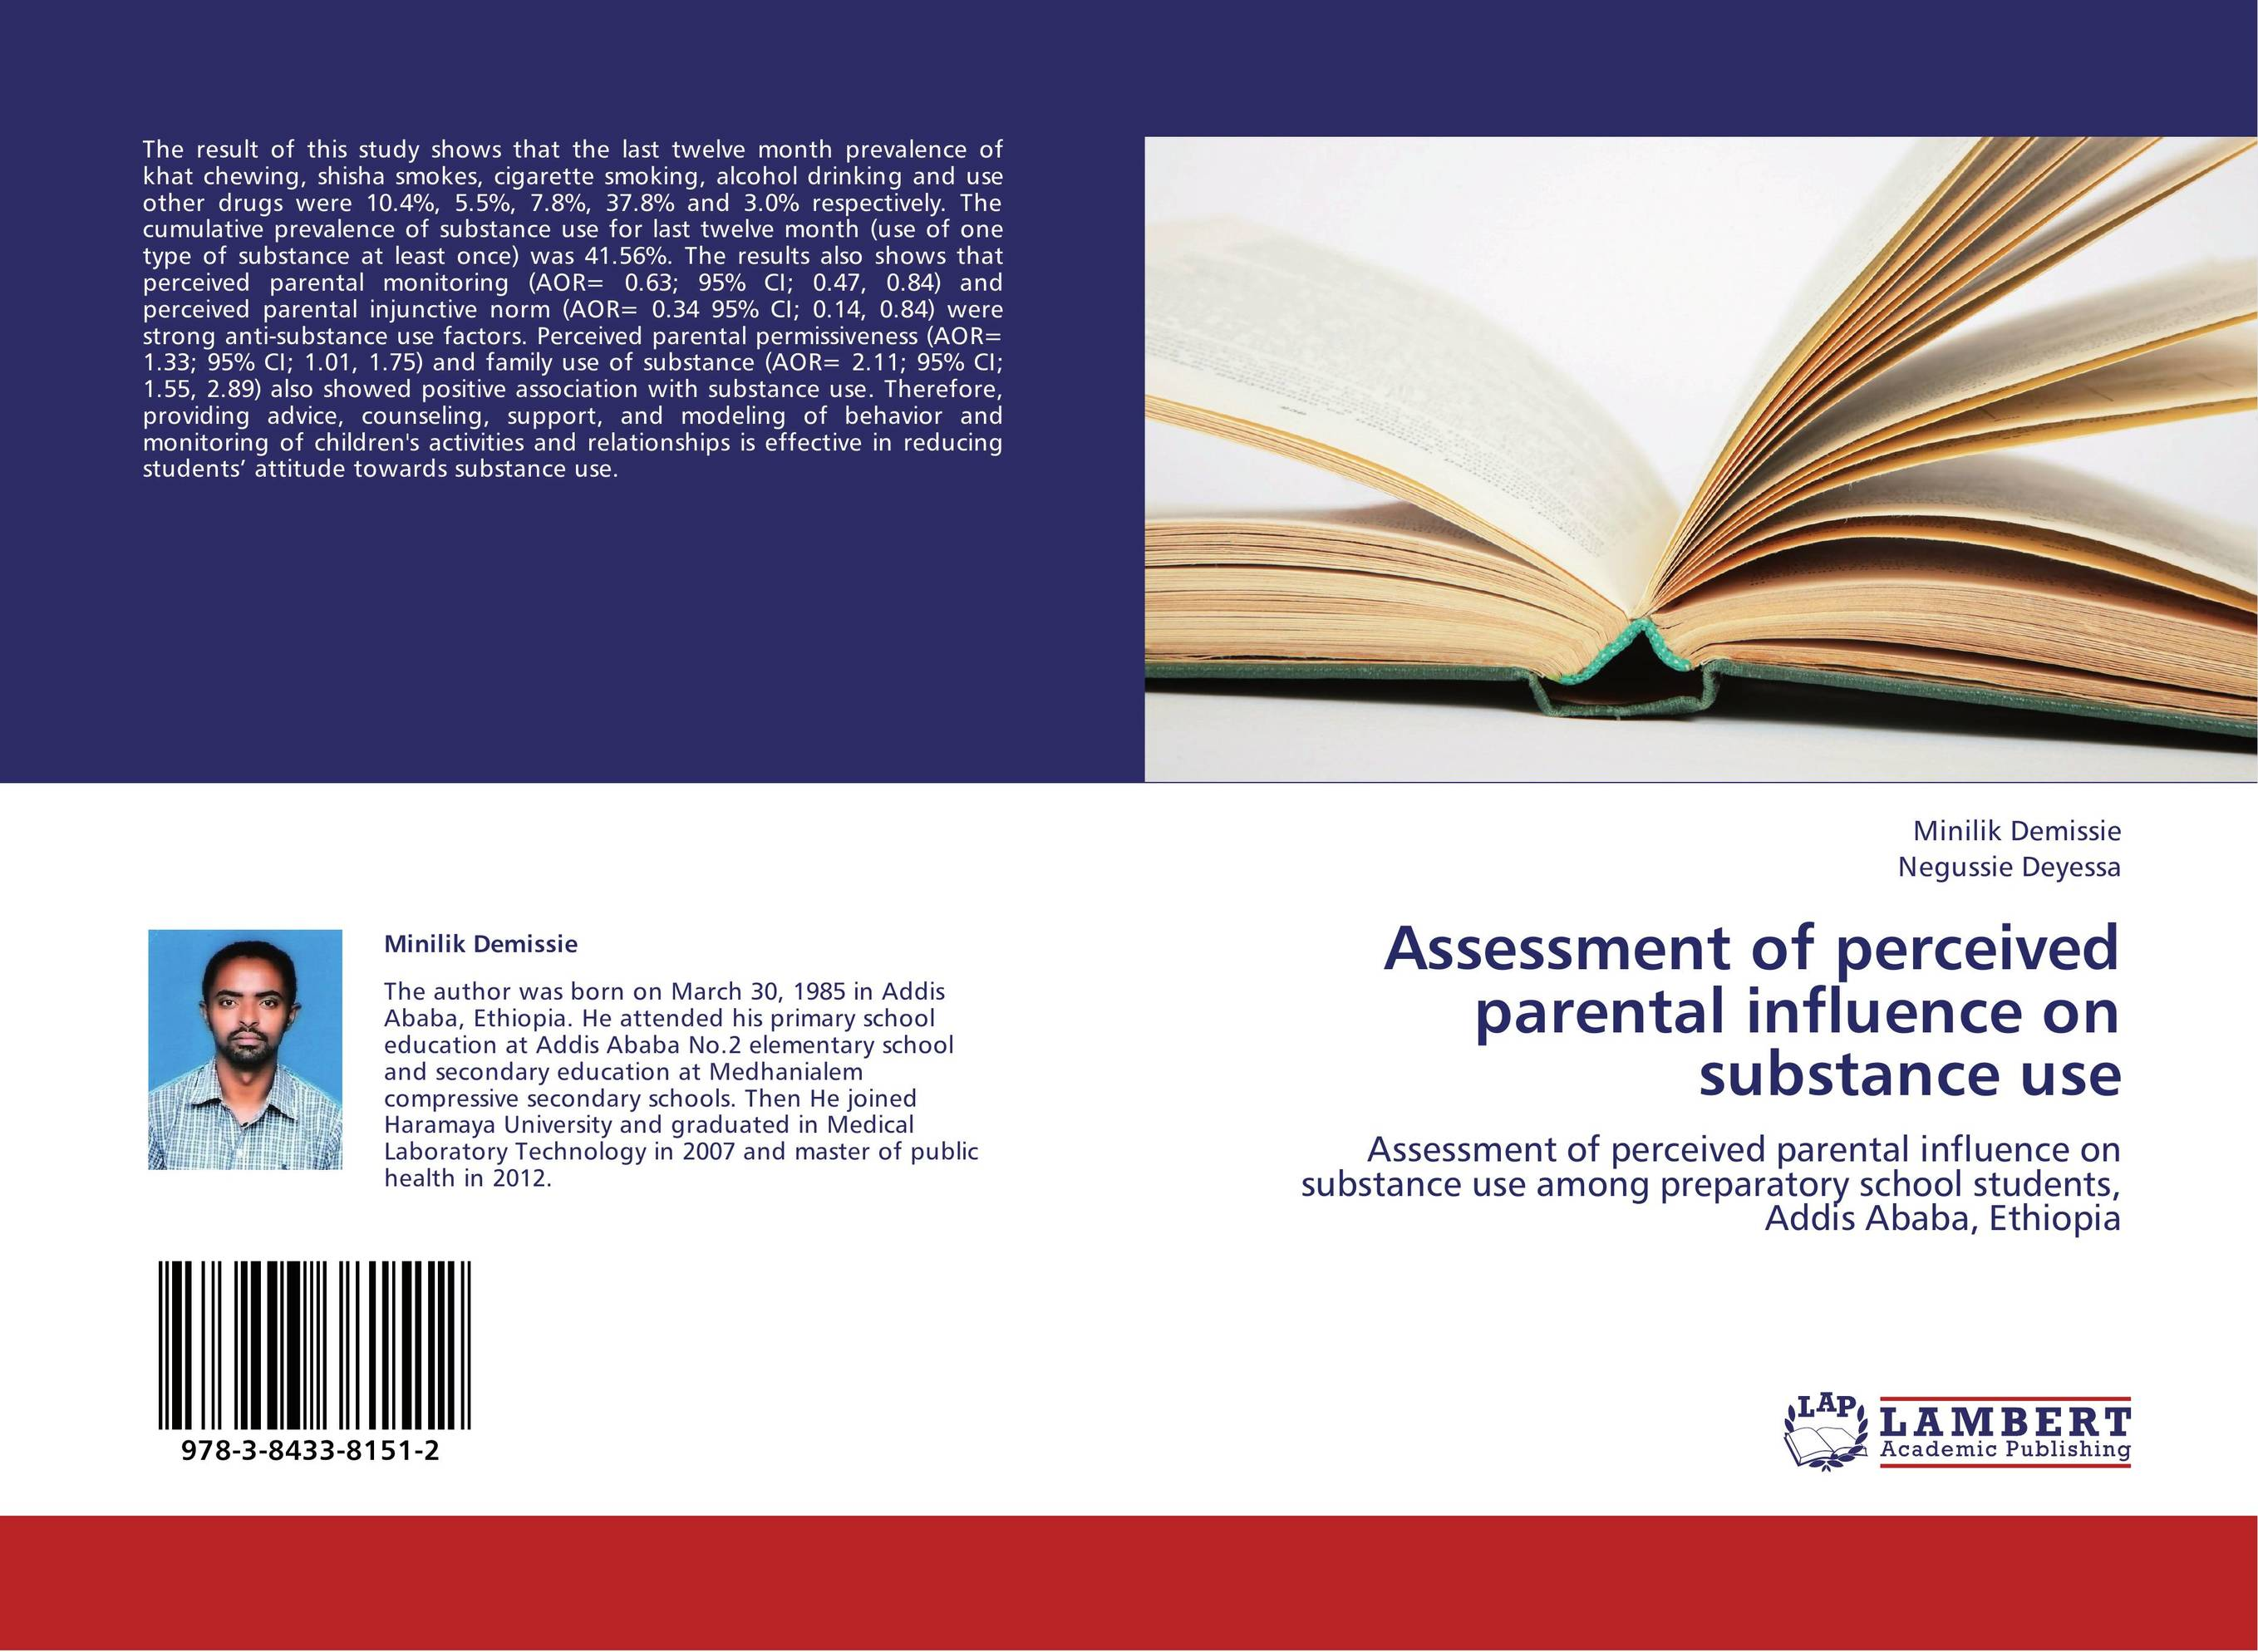 a study on parental influence Parental alienation (pa), parental alienation syndrome (pas) website, essay browne kiswana help by dr interventions rooted in indigenous traditions meet needs of american a study on parental influence indian and alaska native communities.